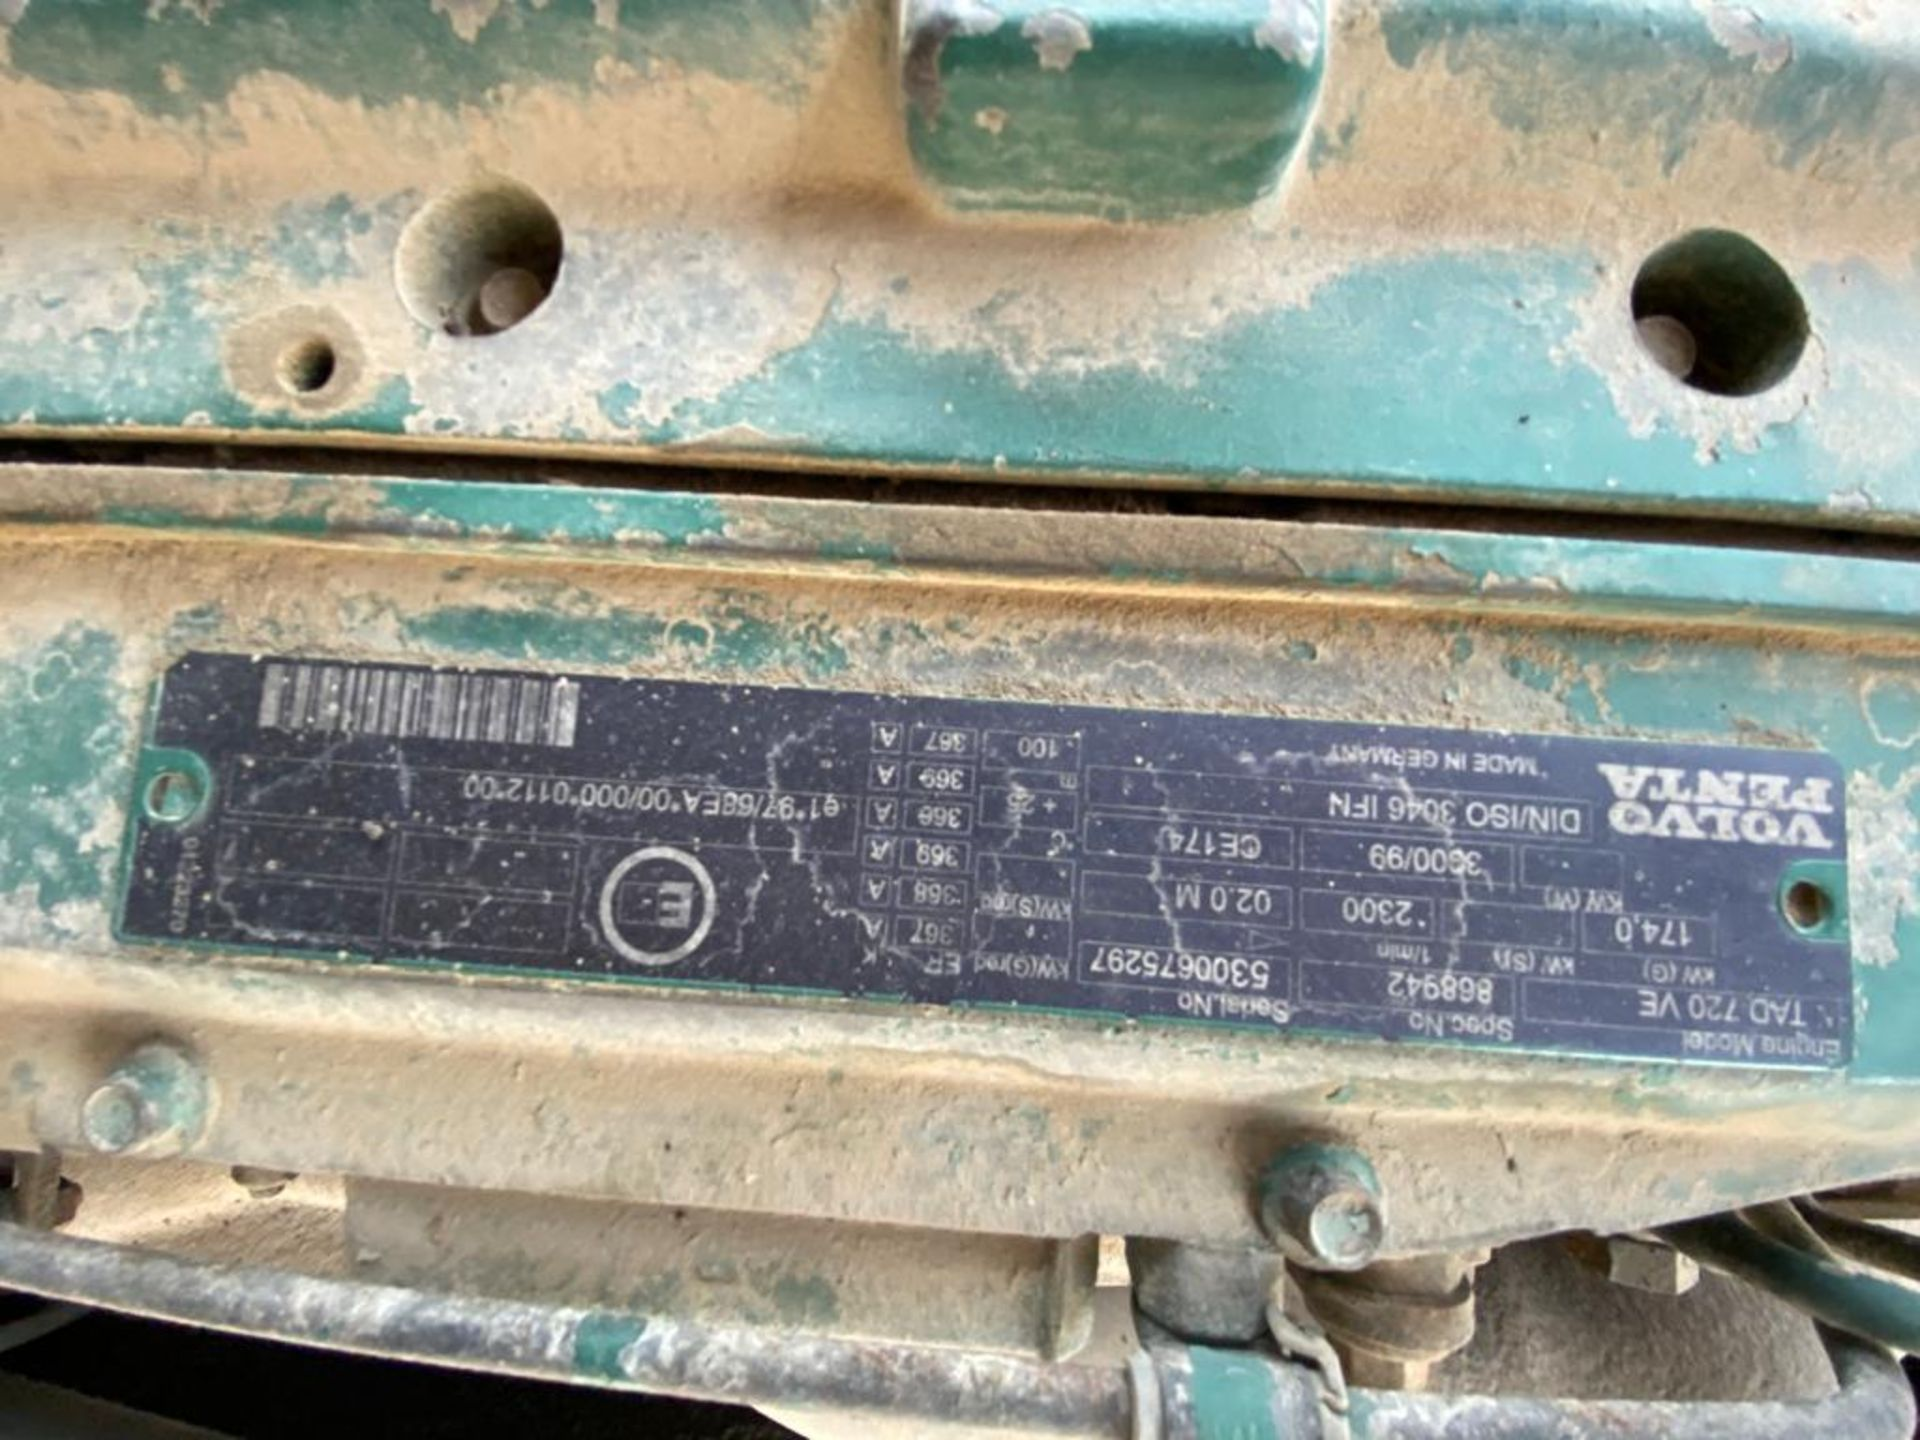 Terberg Capacity 2002 Terminal Tractor, automatic transmission, with Volvo motor - Image 56 of 57